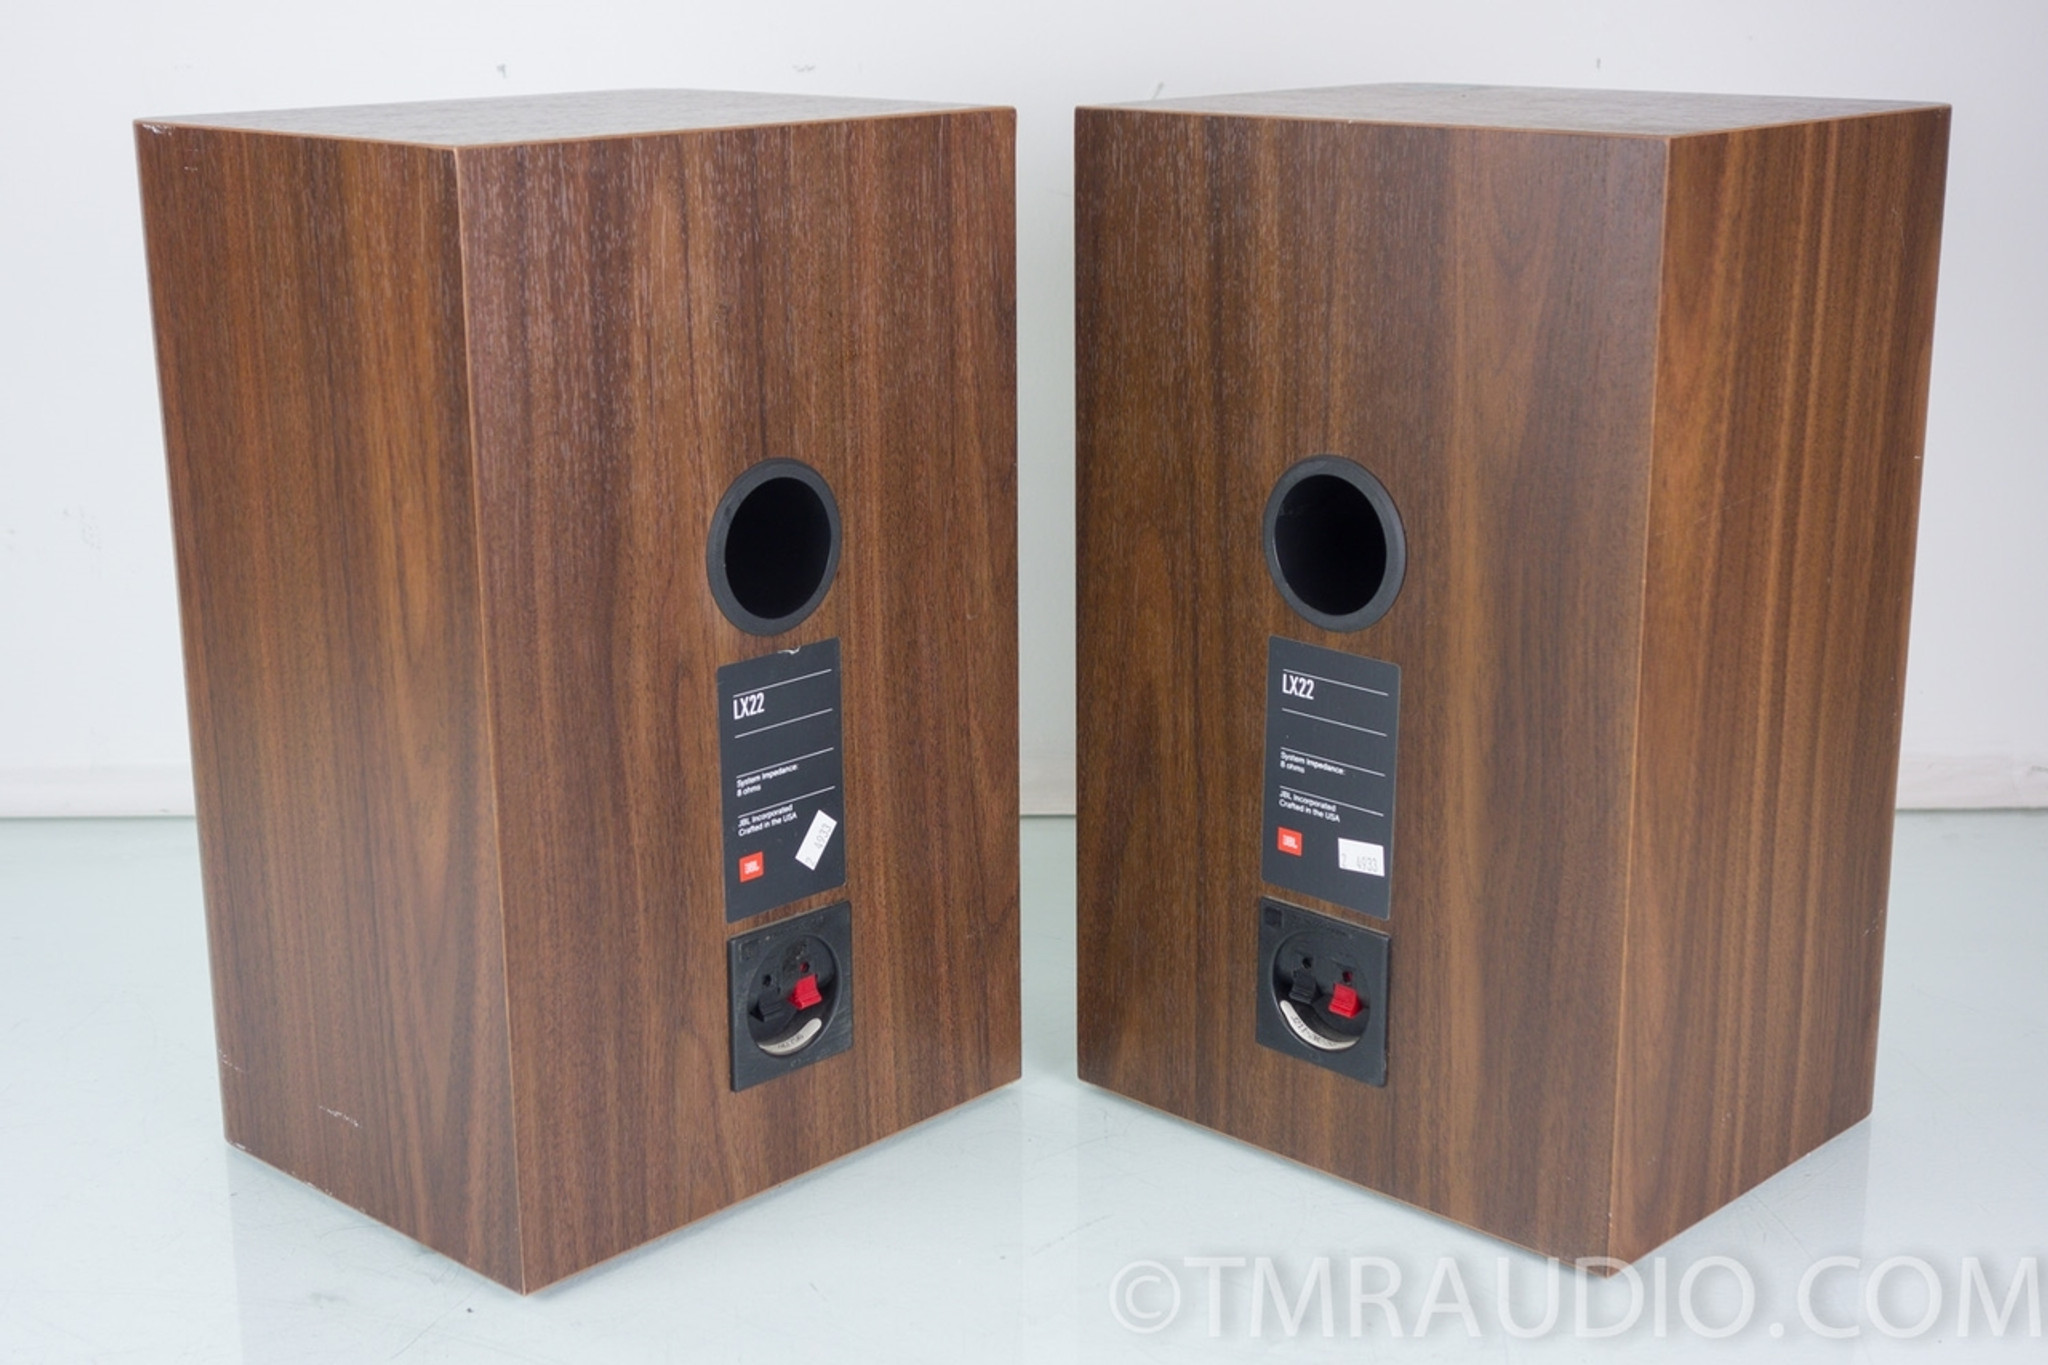 Nice Speakers For Room Jbl Lx22 Bookshelf Speakers Nice Working Pair